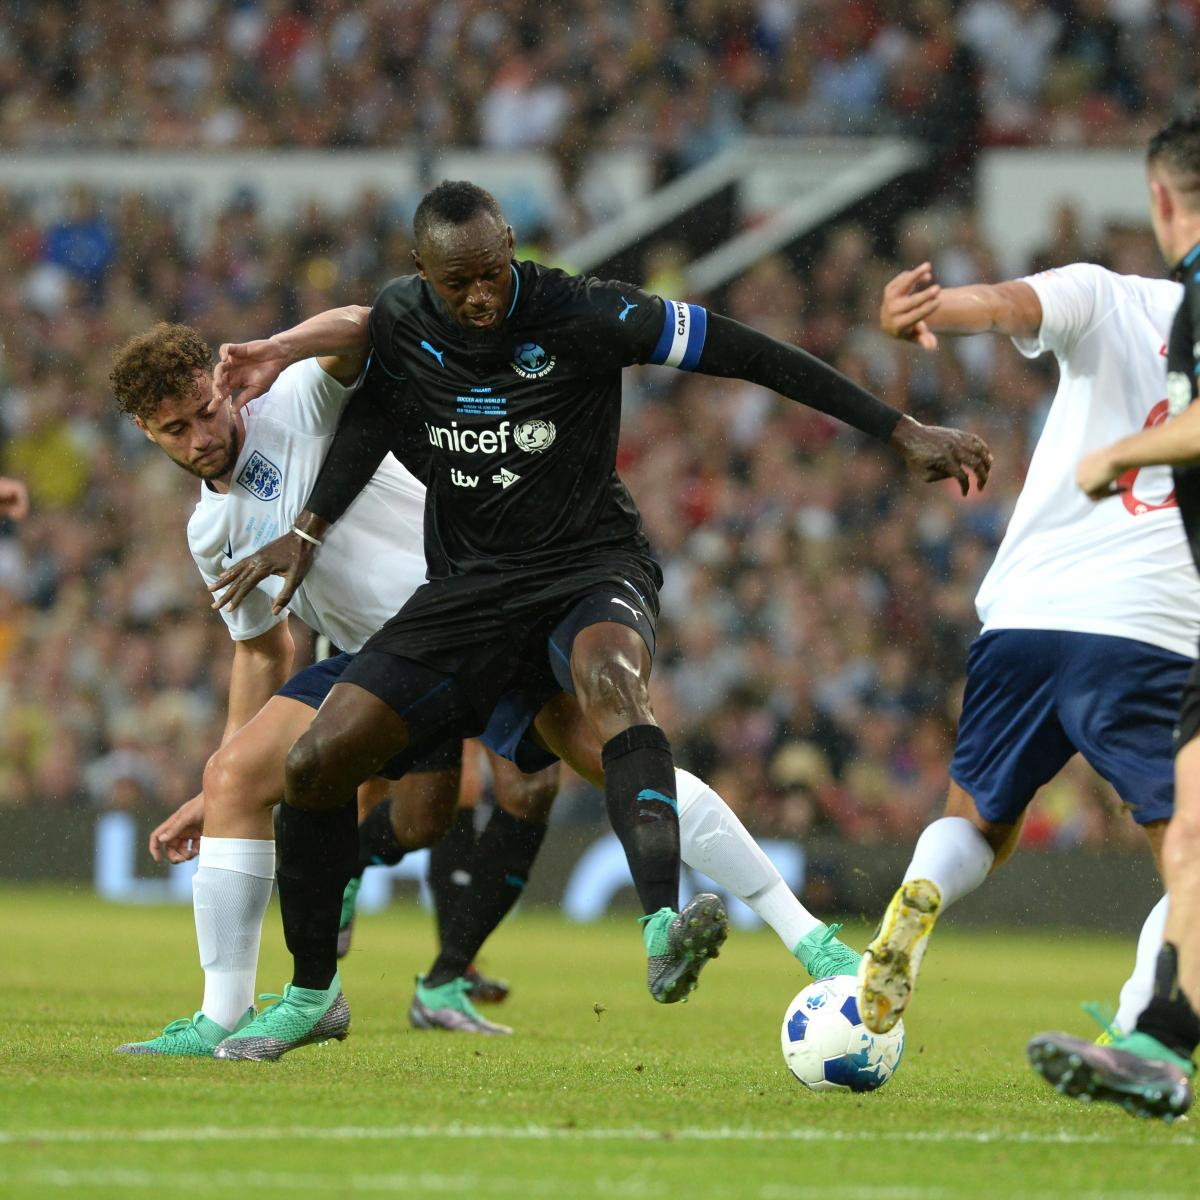 Bet on soccer aid nba sports lines betting